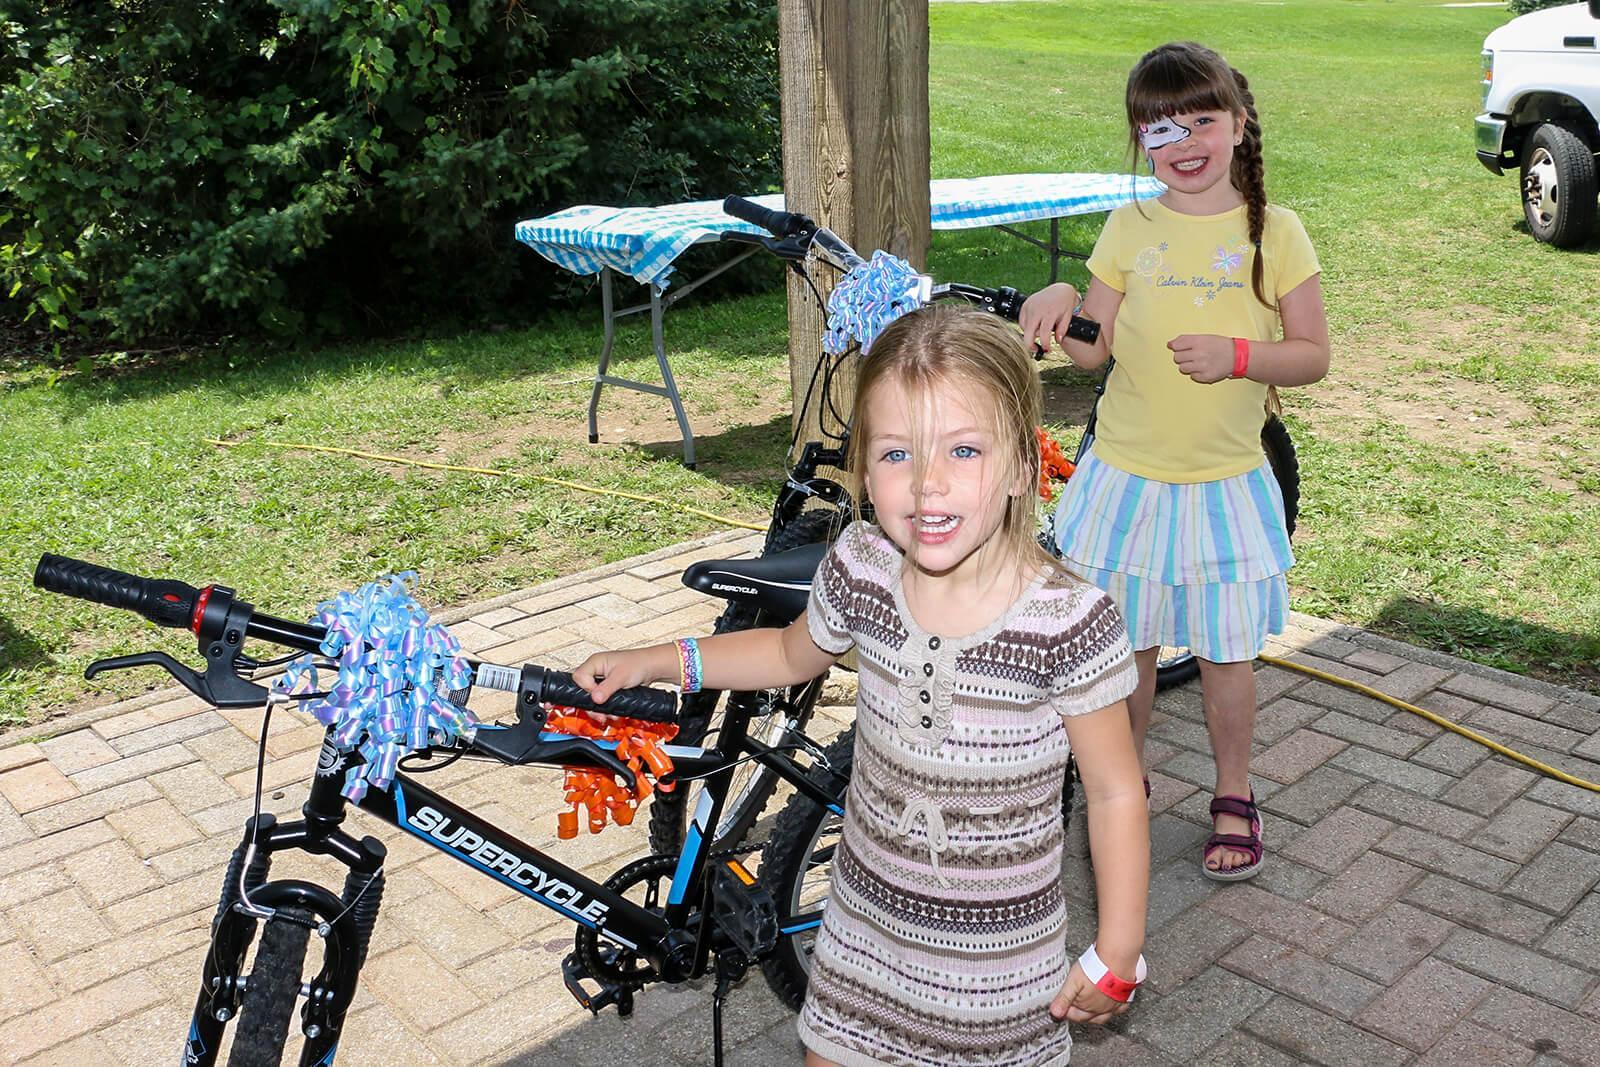 Eden Moriarty, 6 (back) and Brooke Garner, 4, held the winning raffle tickets and each took home a brand new bicycle courtesy of the Waterloo Chapter.